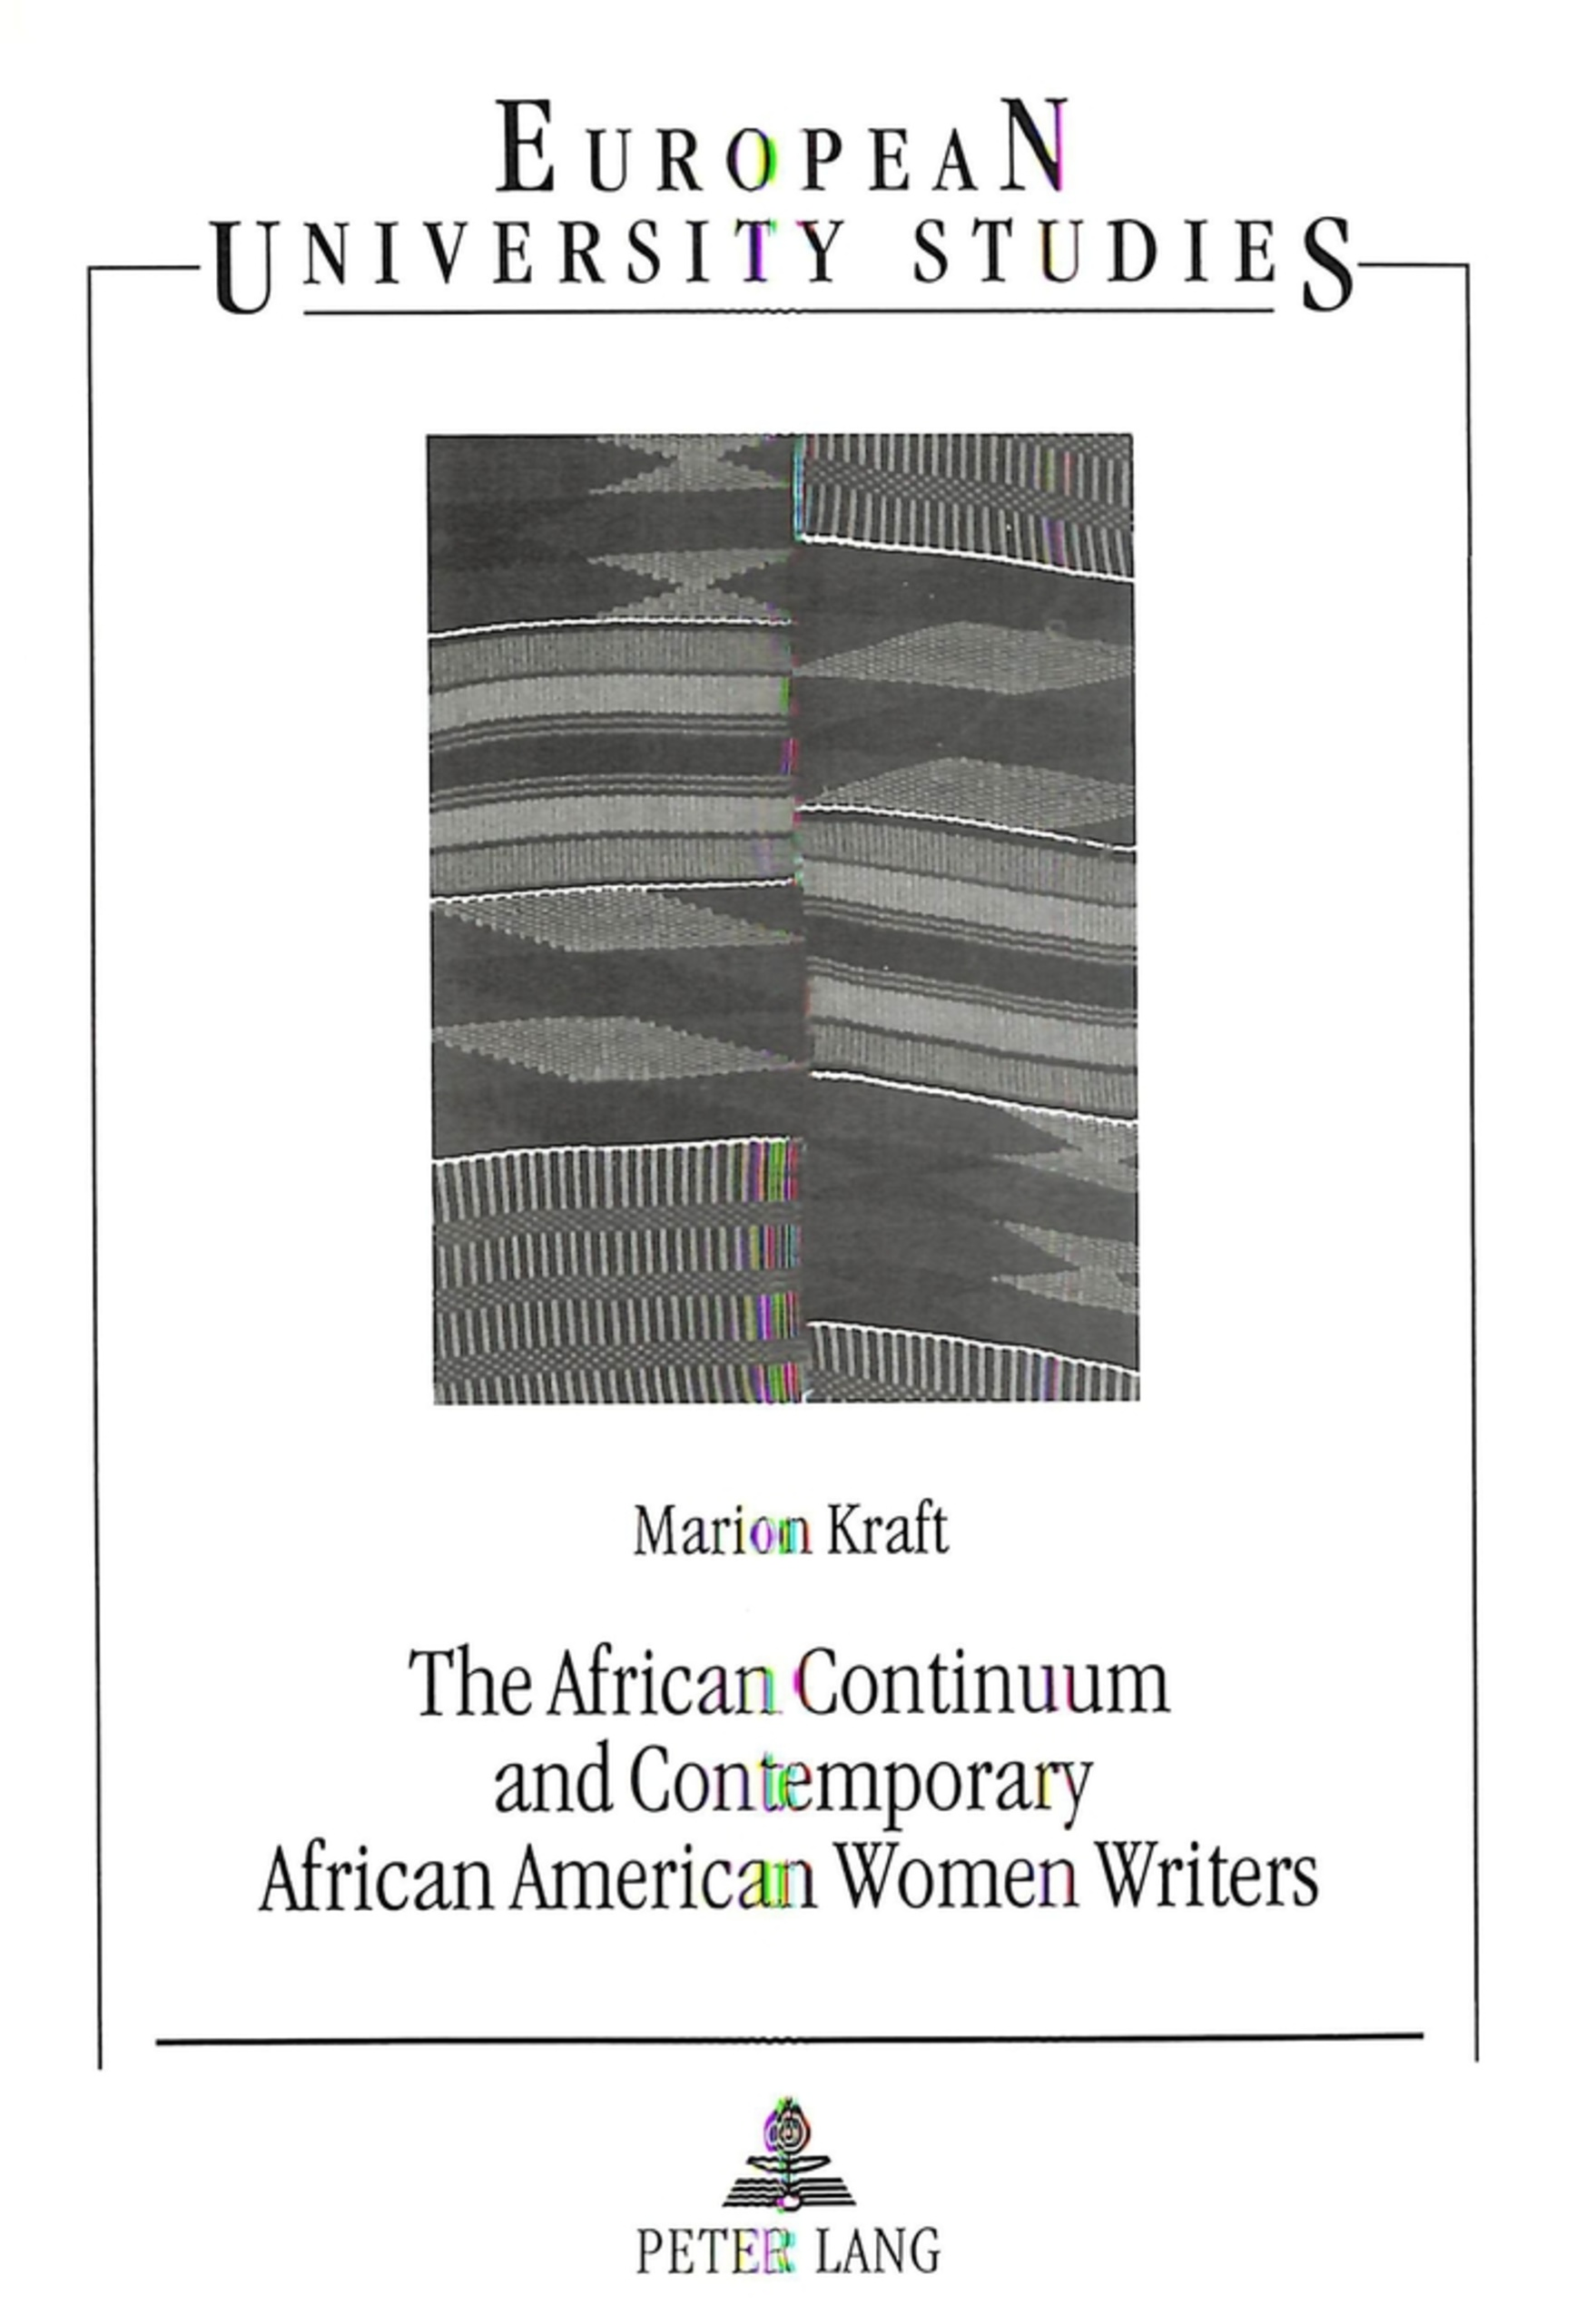 Title: The African Continuum and Contemporary African American Women Writers